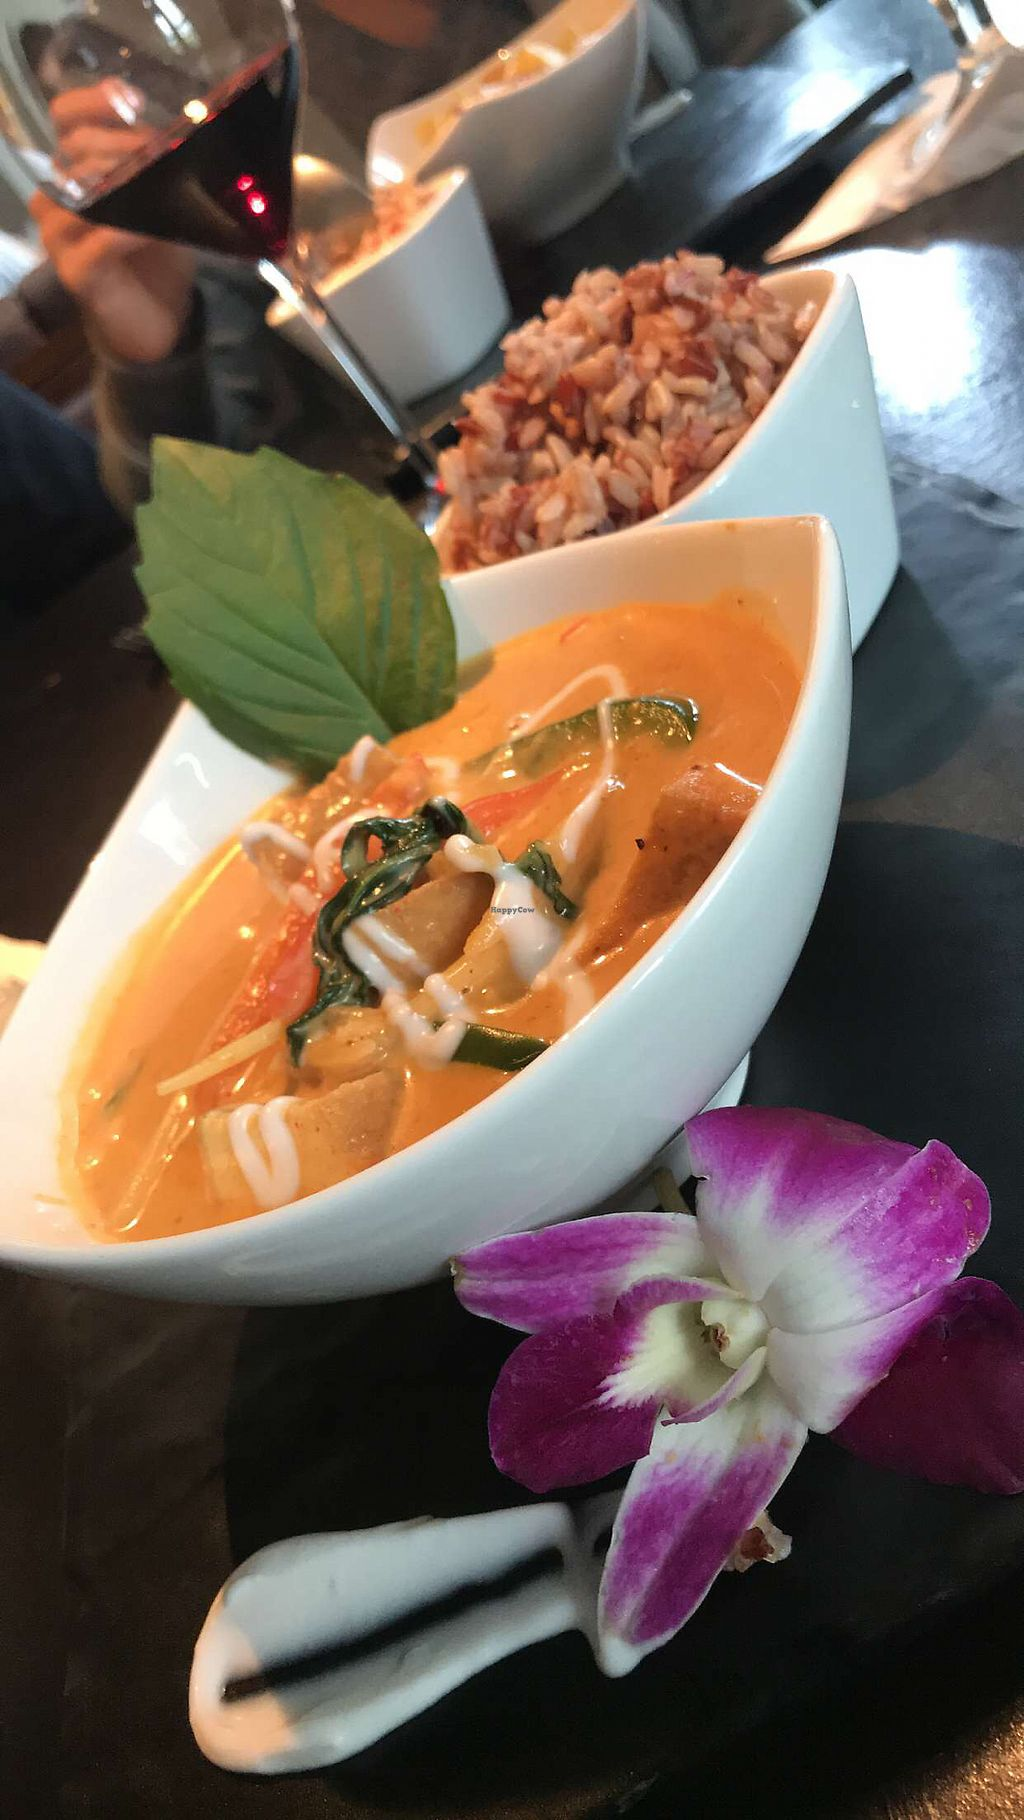 """Photo of Noi Thai  by <a href=""""/members/profile/JaredCostanzo"""">JaredCostanzo</a> <br/>Tofu Red Curry... amazing!  <br/> December 26, 2017  - <a href='/contact/abuse/image/91555/339313'>Report</a>"""